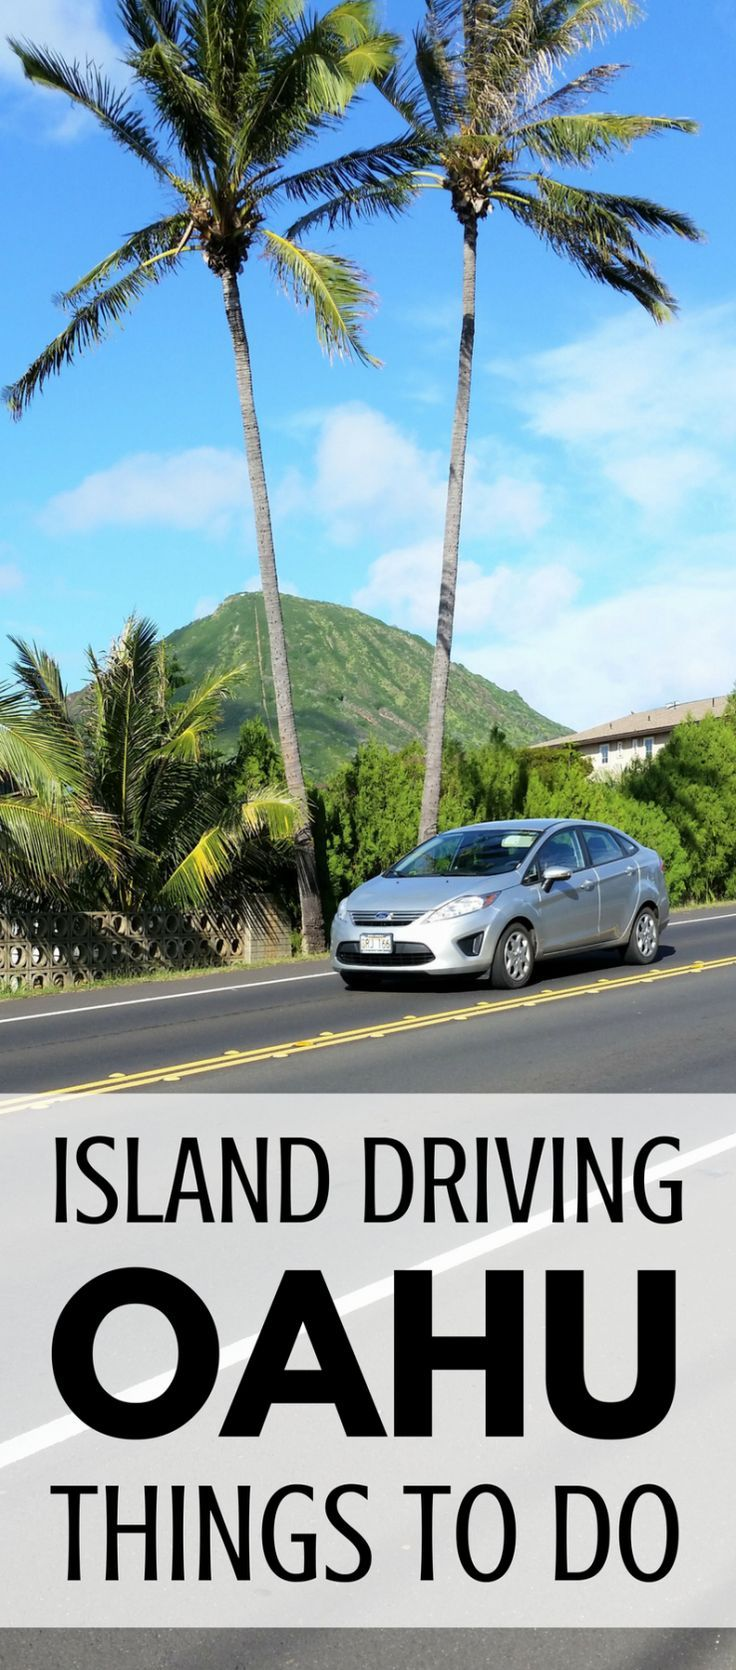 Things To Do On Oahu Island Driving. Scenic Drive With DIY